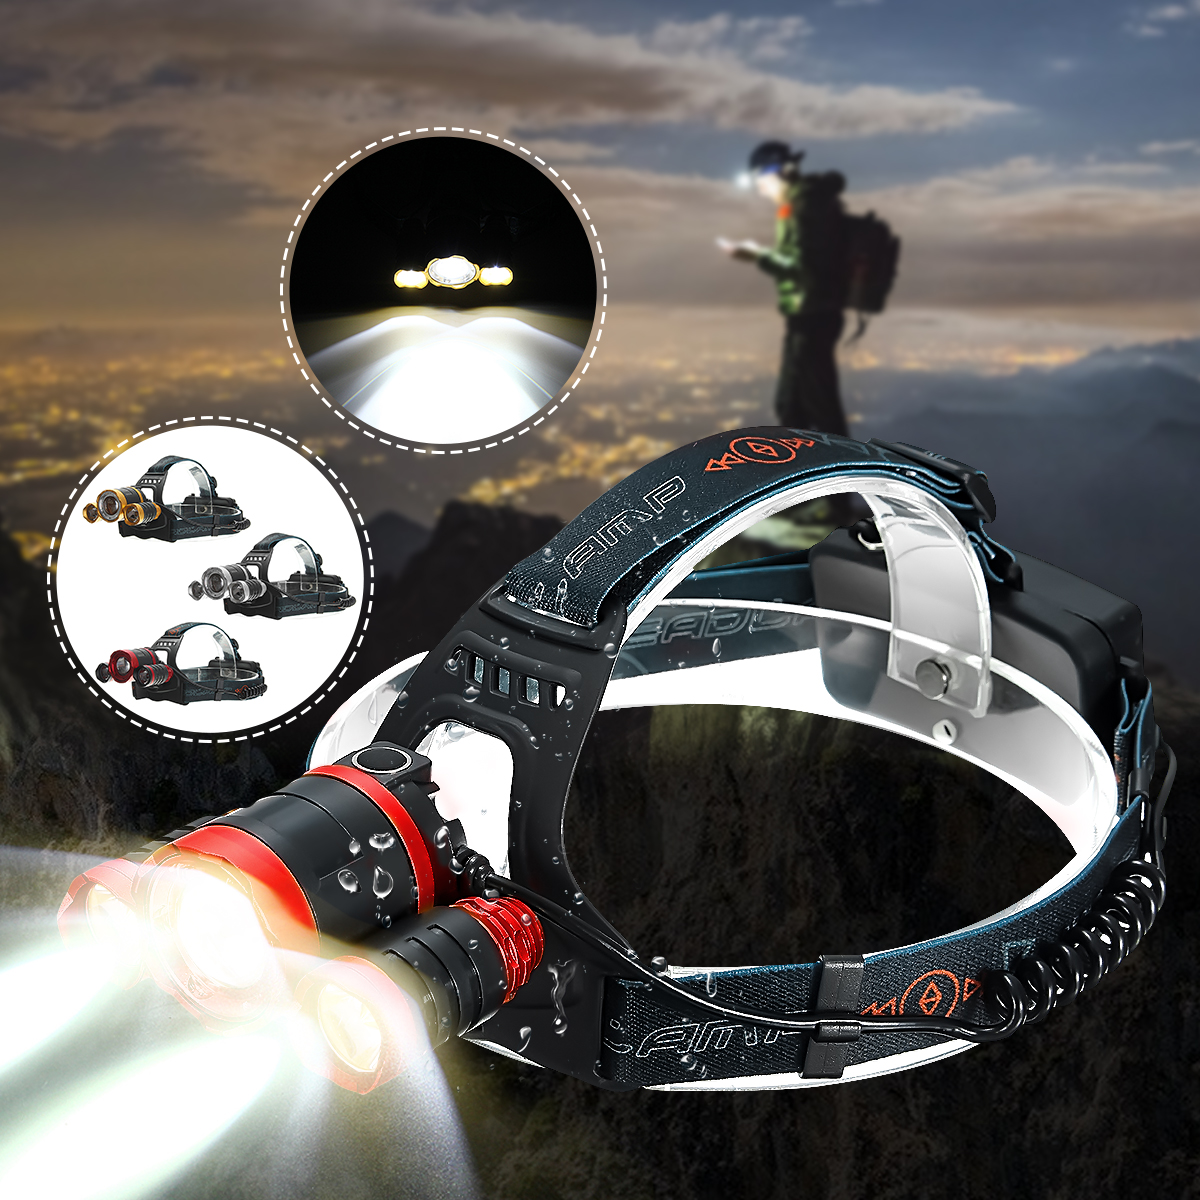 6000 Lumens 3 x T6 led Mechanical Telescopic Zoomable Focus Headlight Headlamp Head Lantern Tactical Lamp 4 Modes Waterproof For Camping Hiking